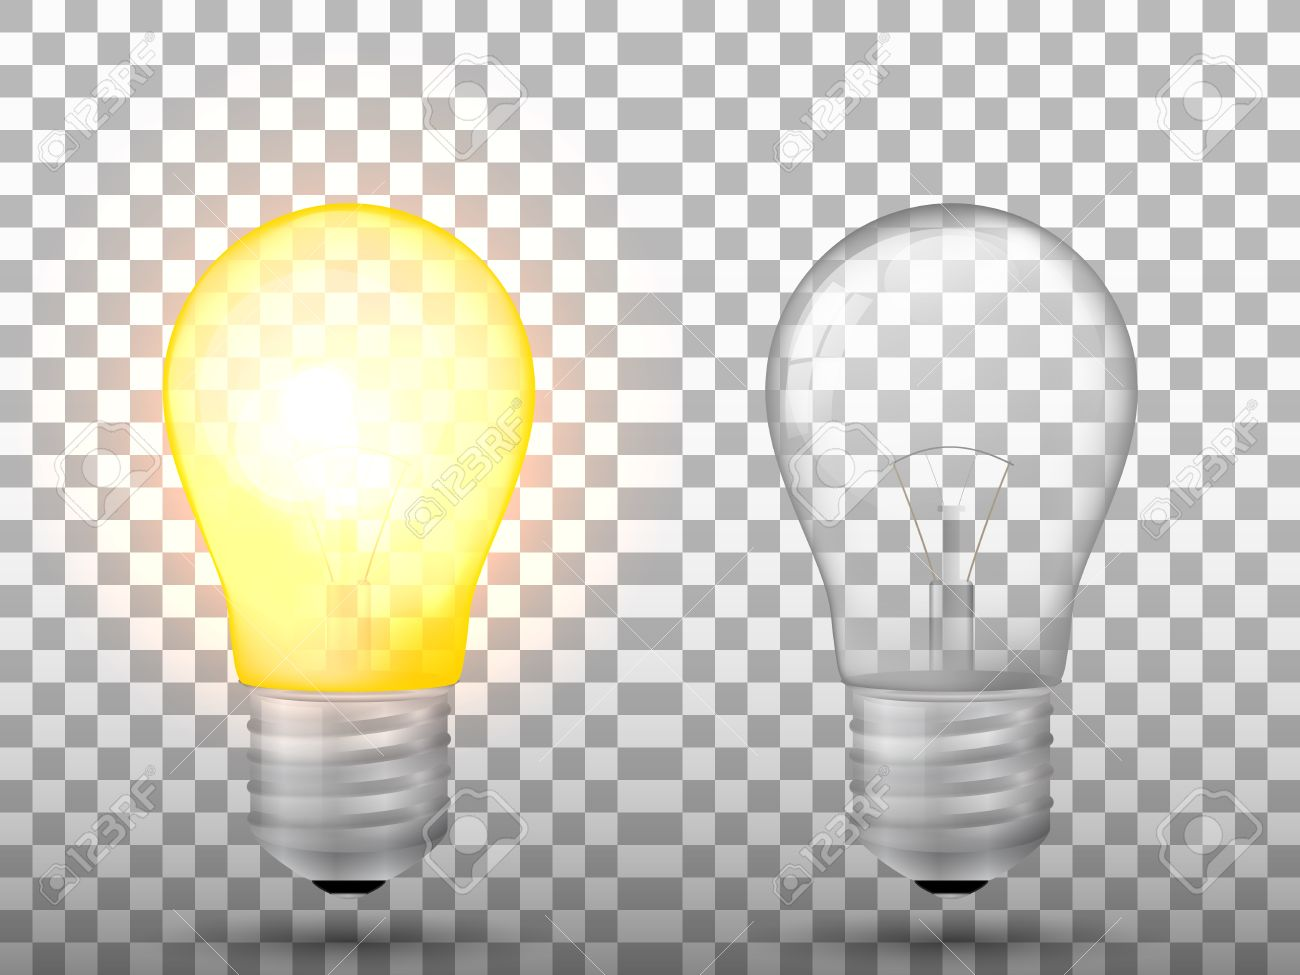 Lighted And Switched Off Light Bulb On A Transparent Background